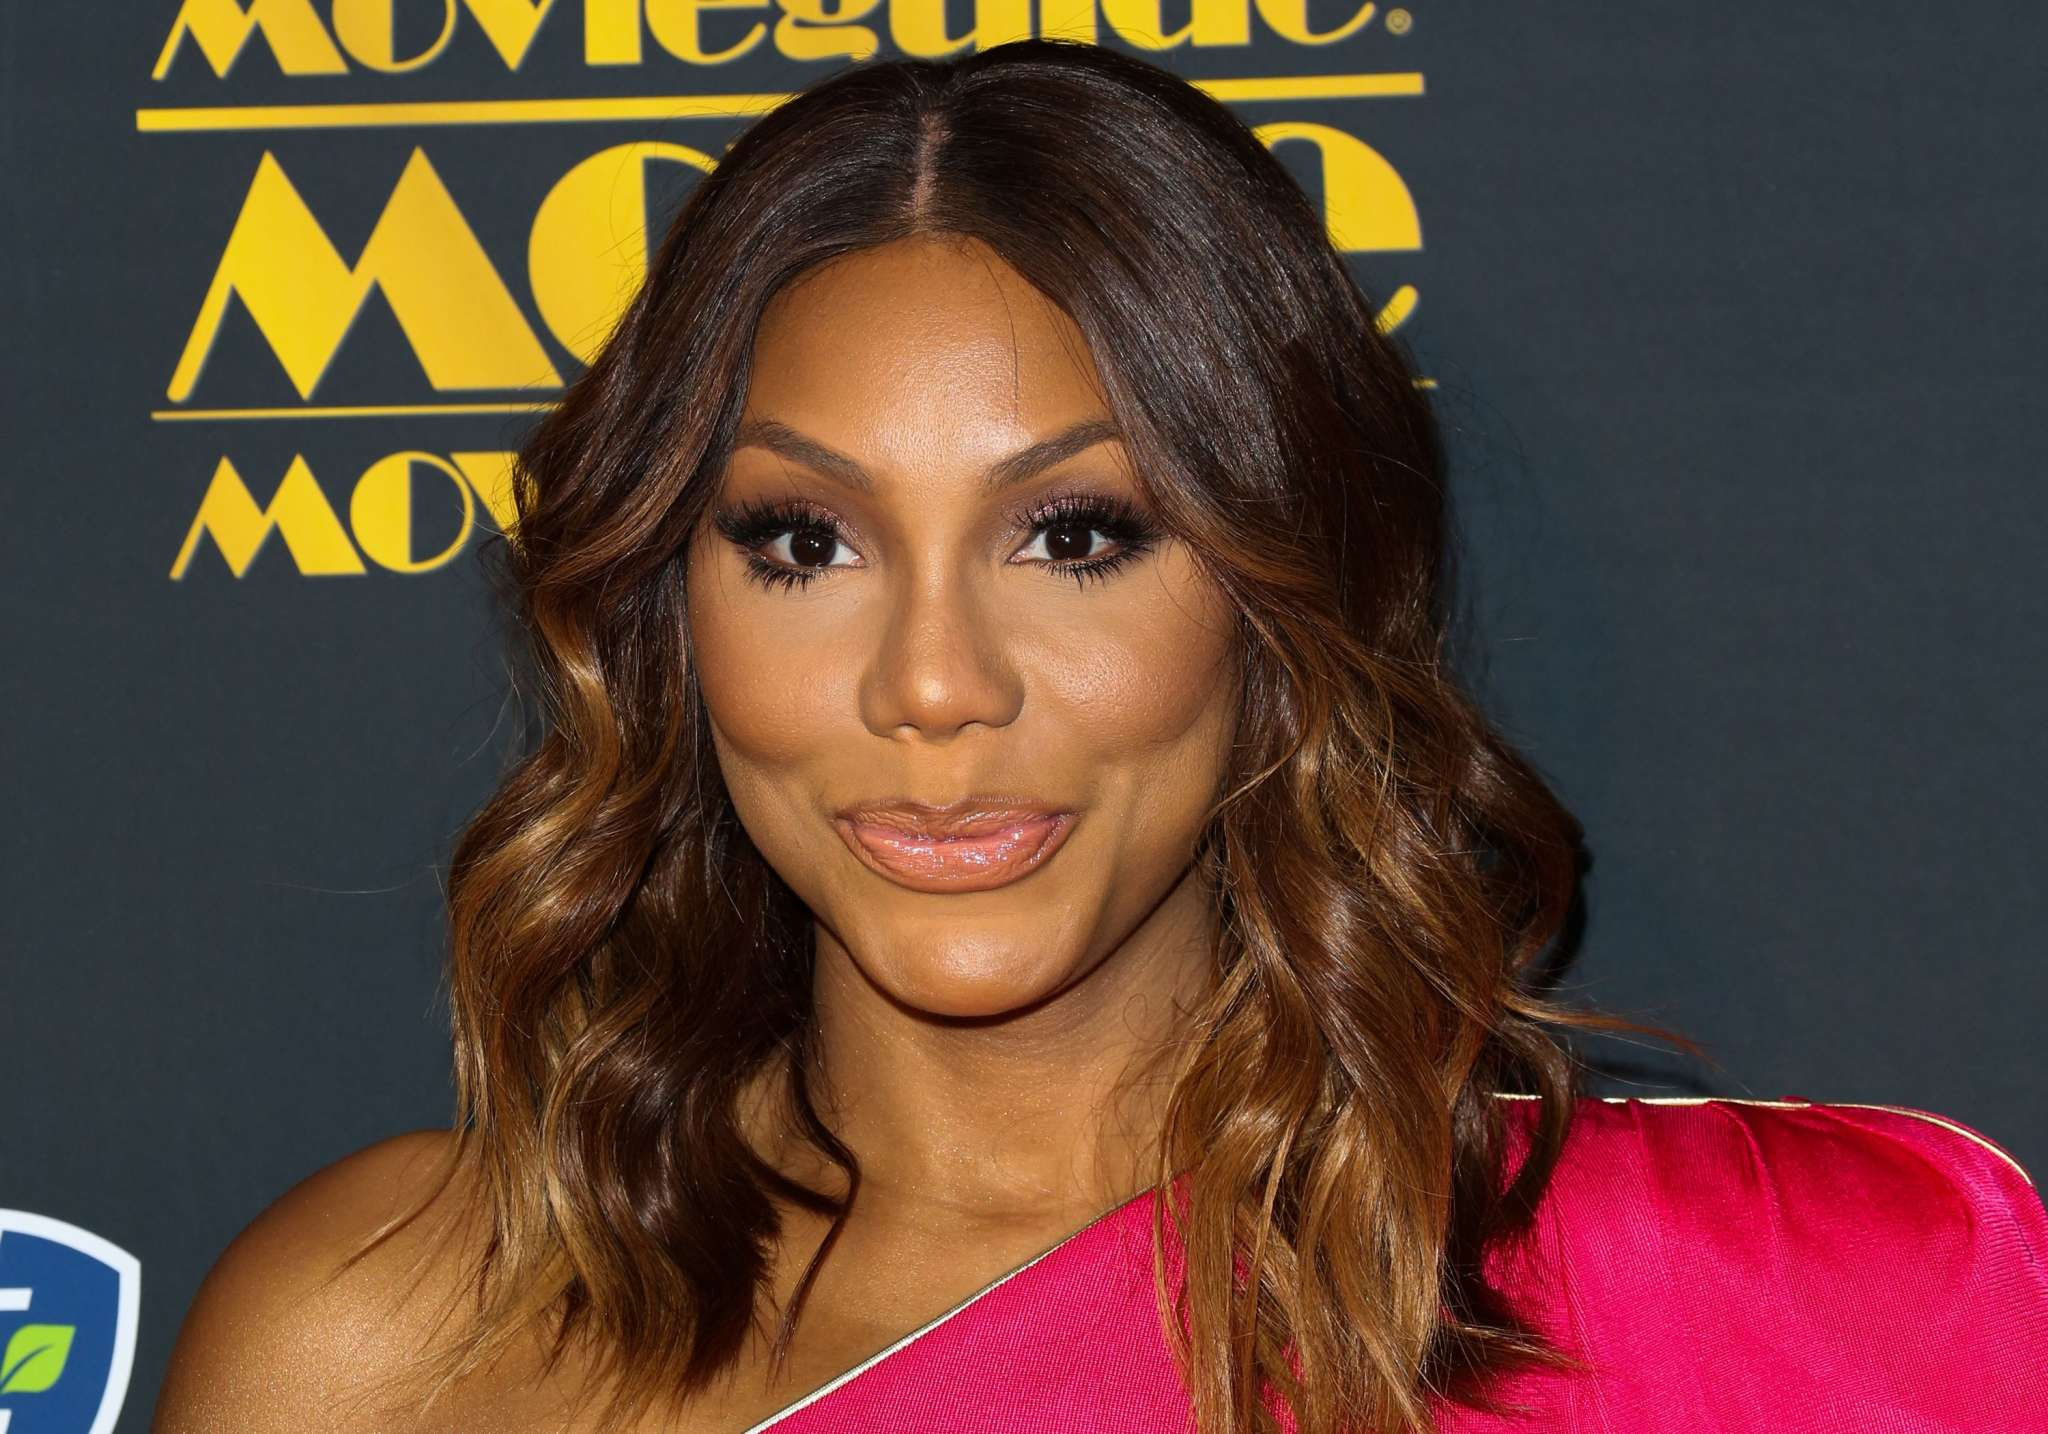 Tamar Braxton Has A Message For The Haters, Defending All Her Sisters - See Her Warning Here